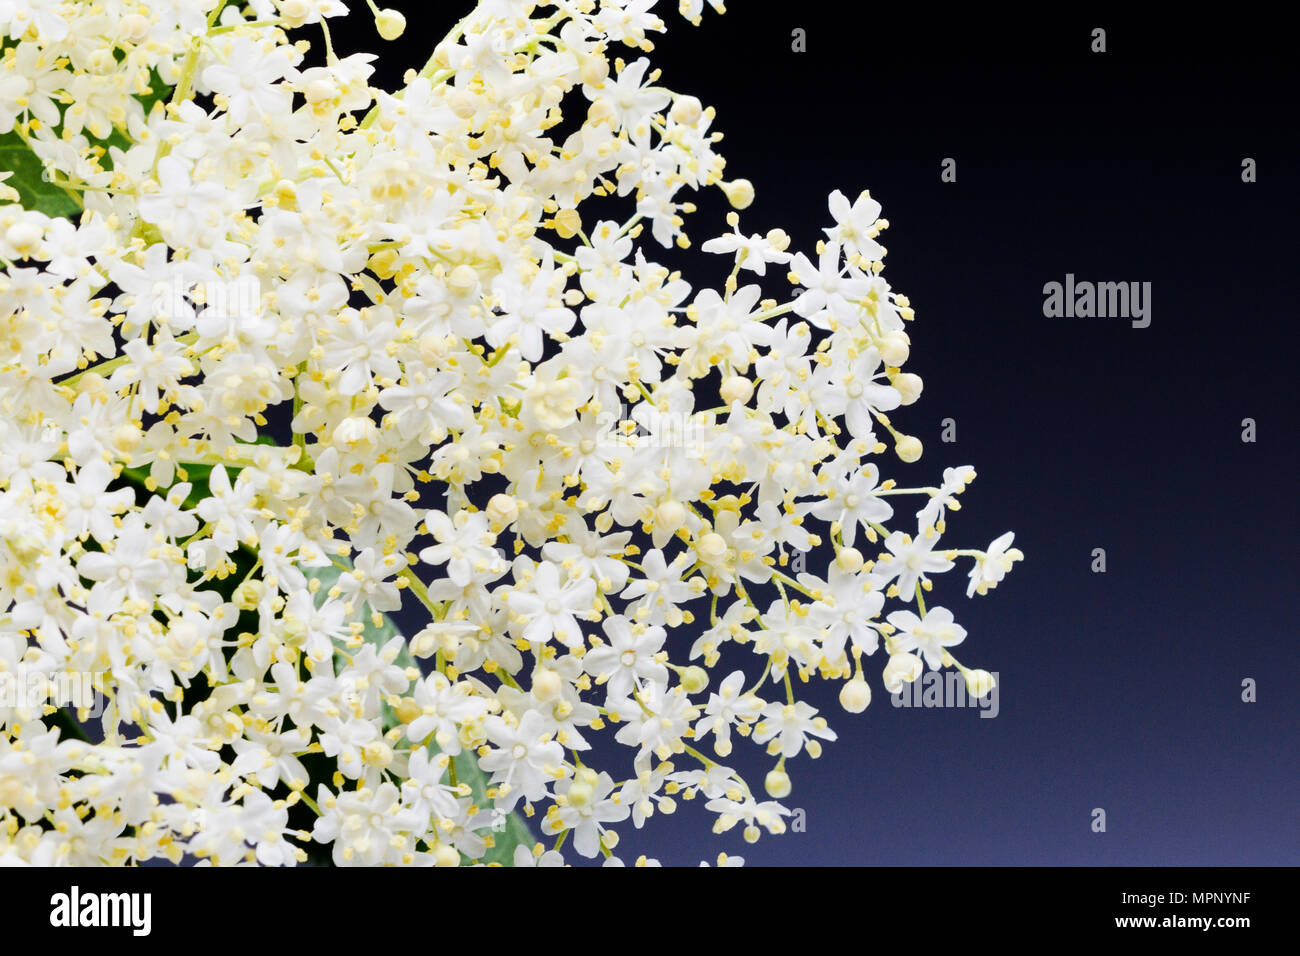 White Lace Of Small Flowers With A Blue Background Stock Photo